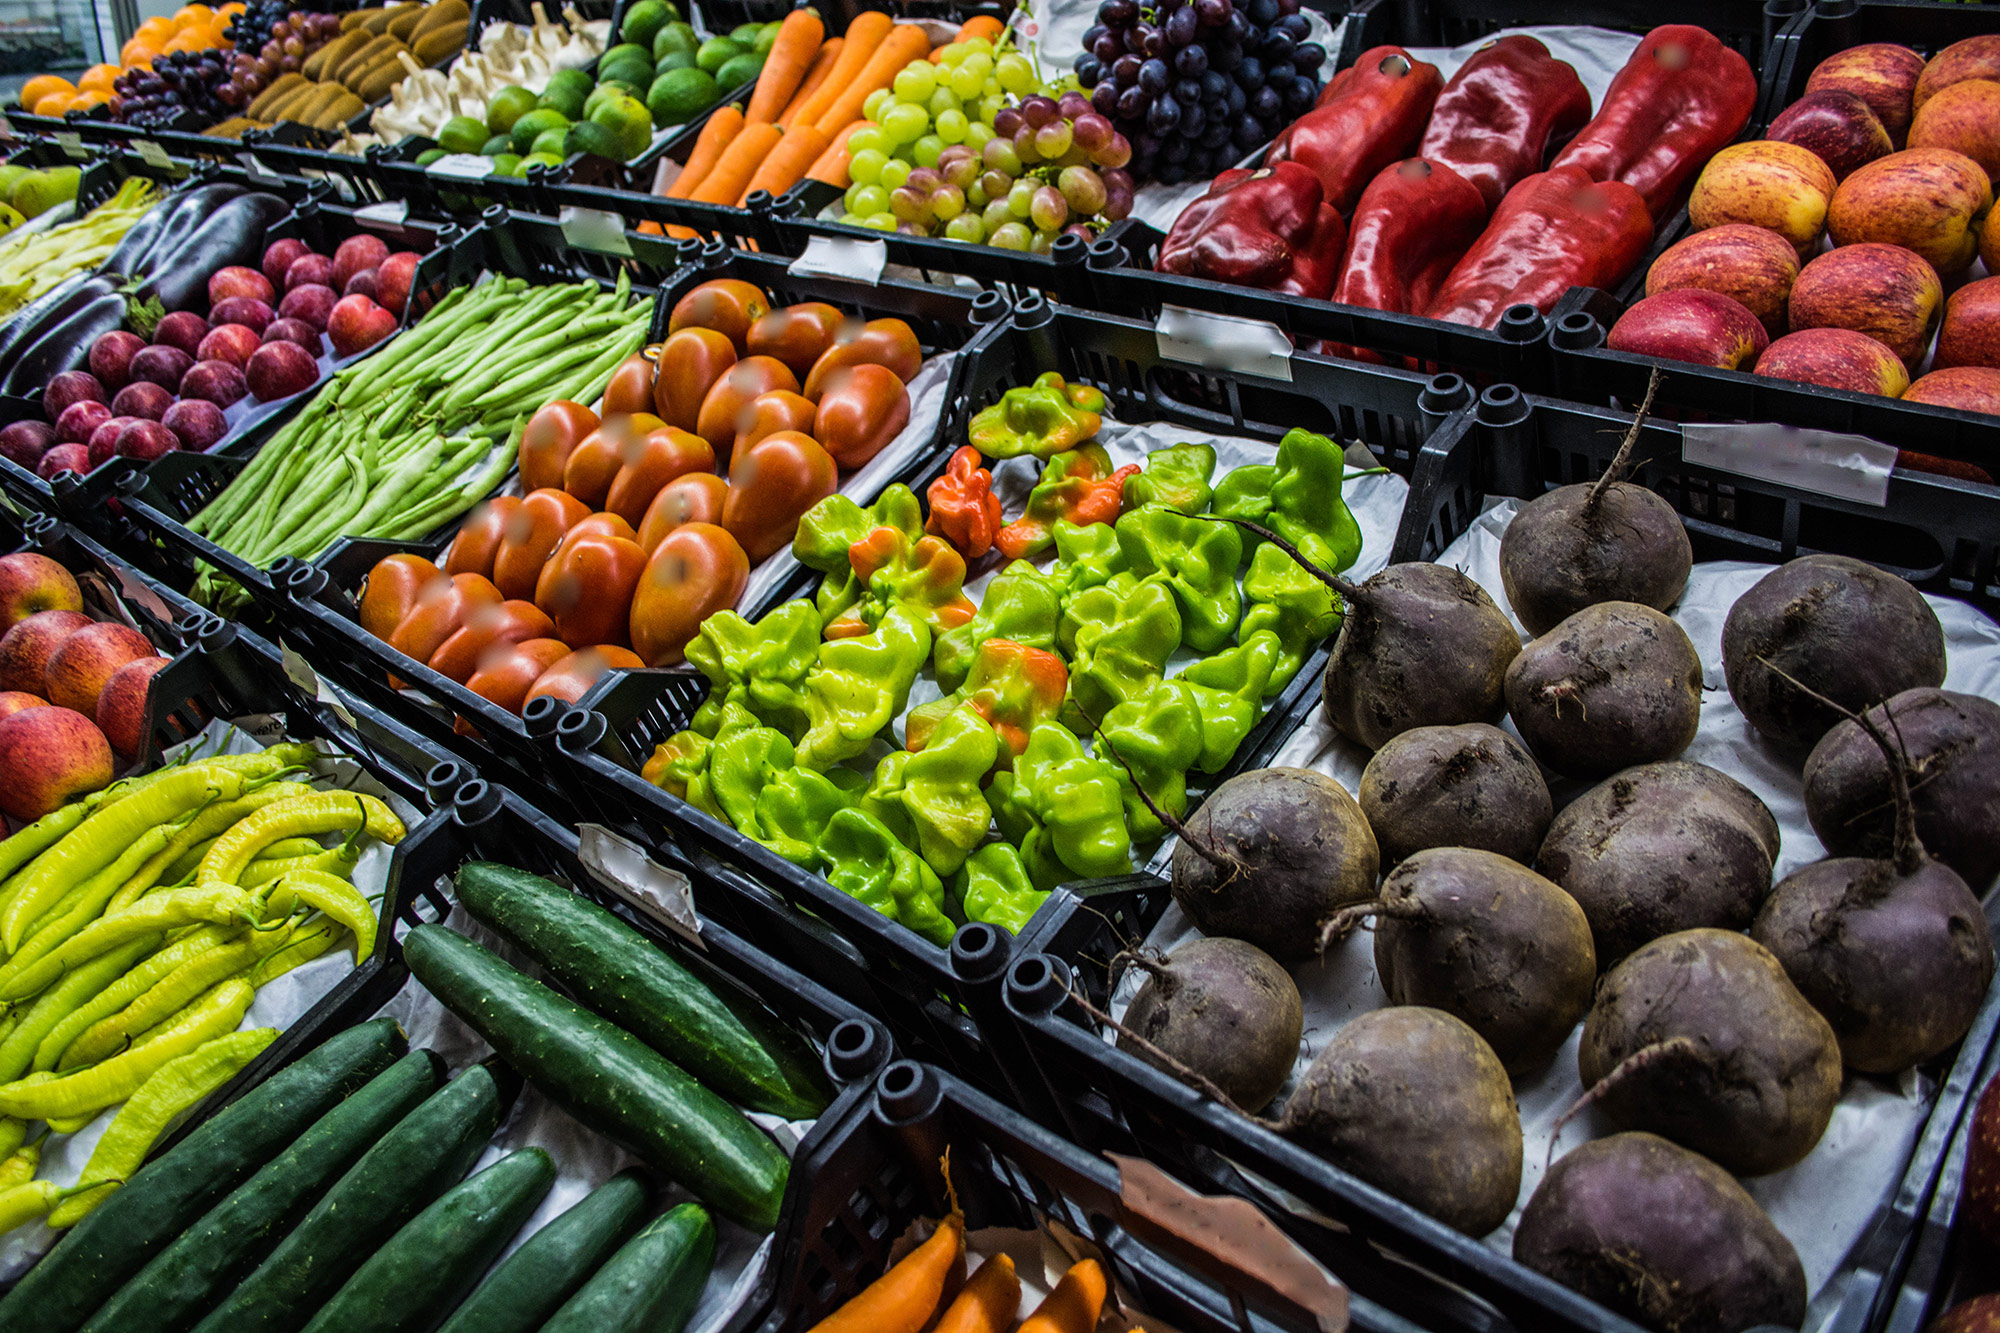 Fruits and Vegetables at a Grocery Store